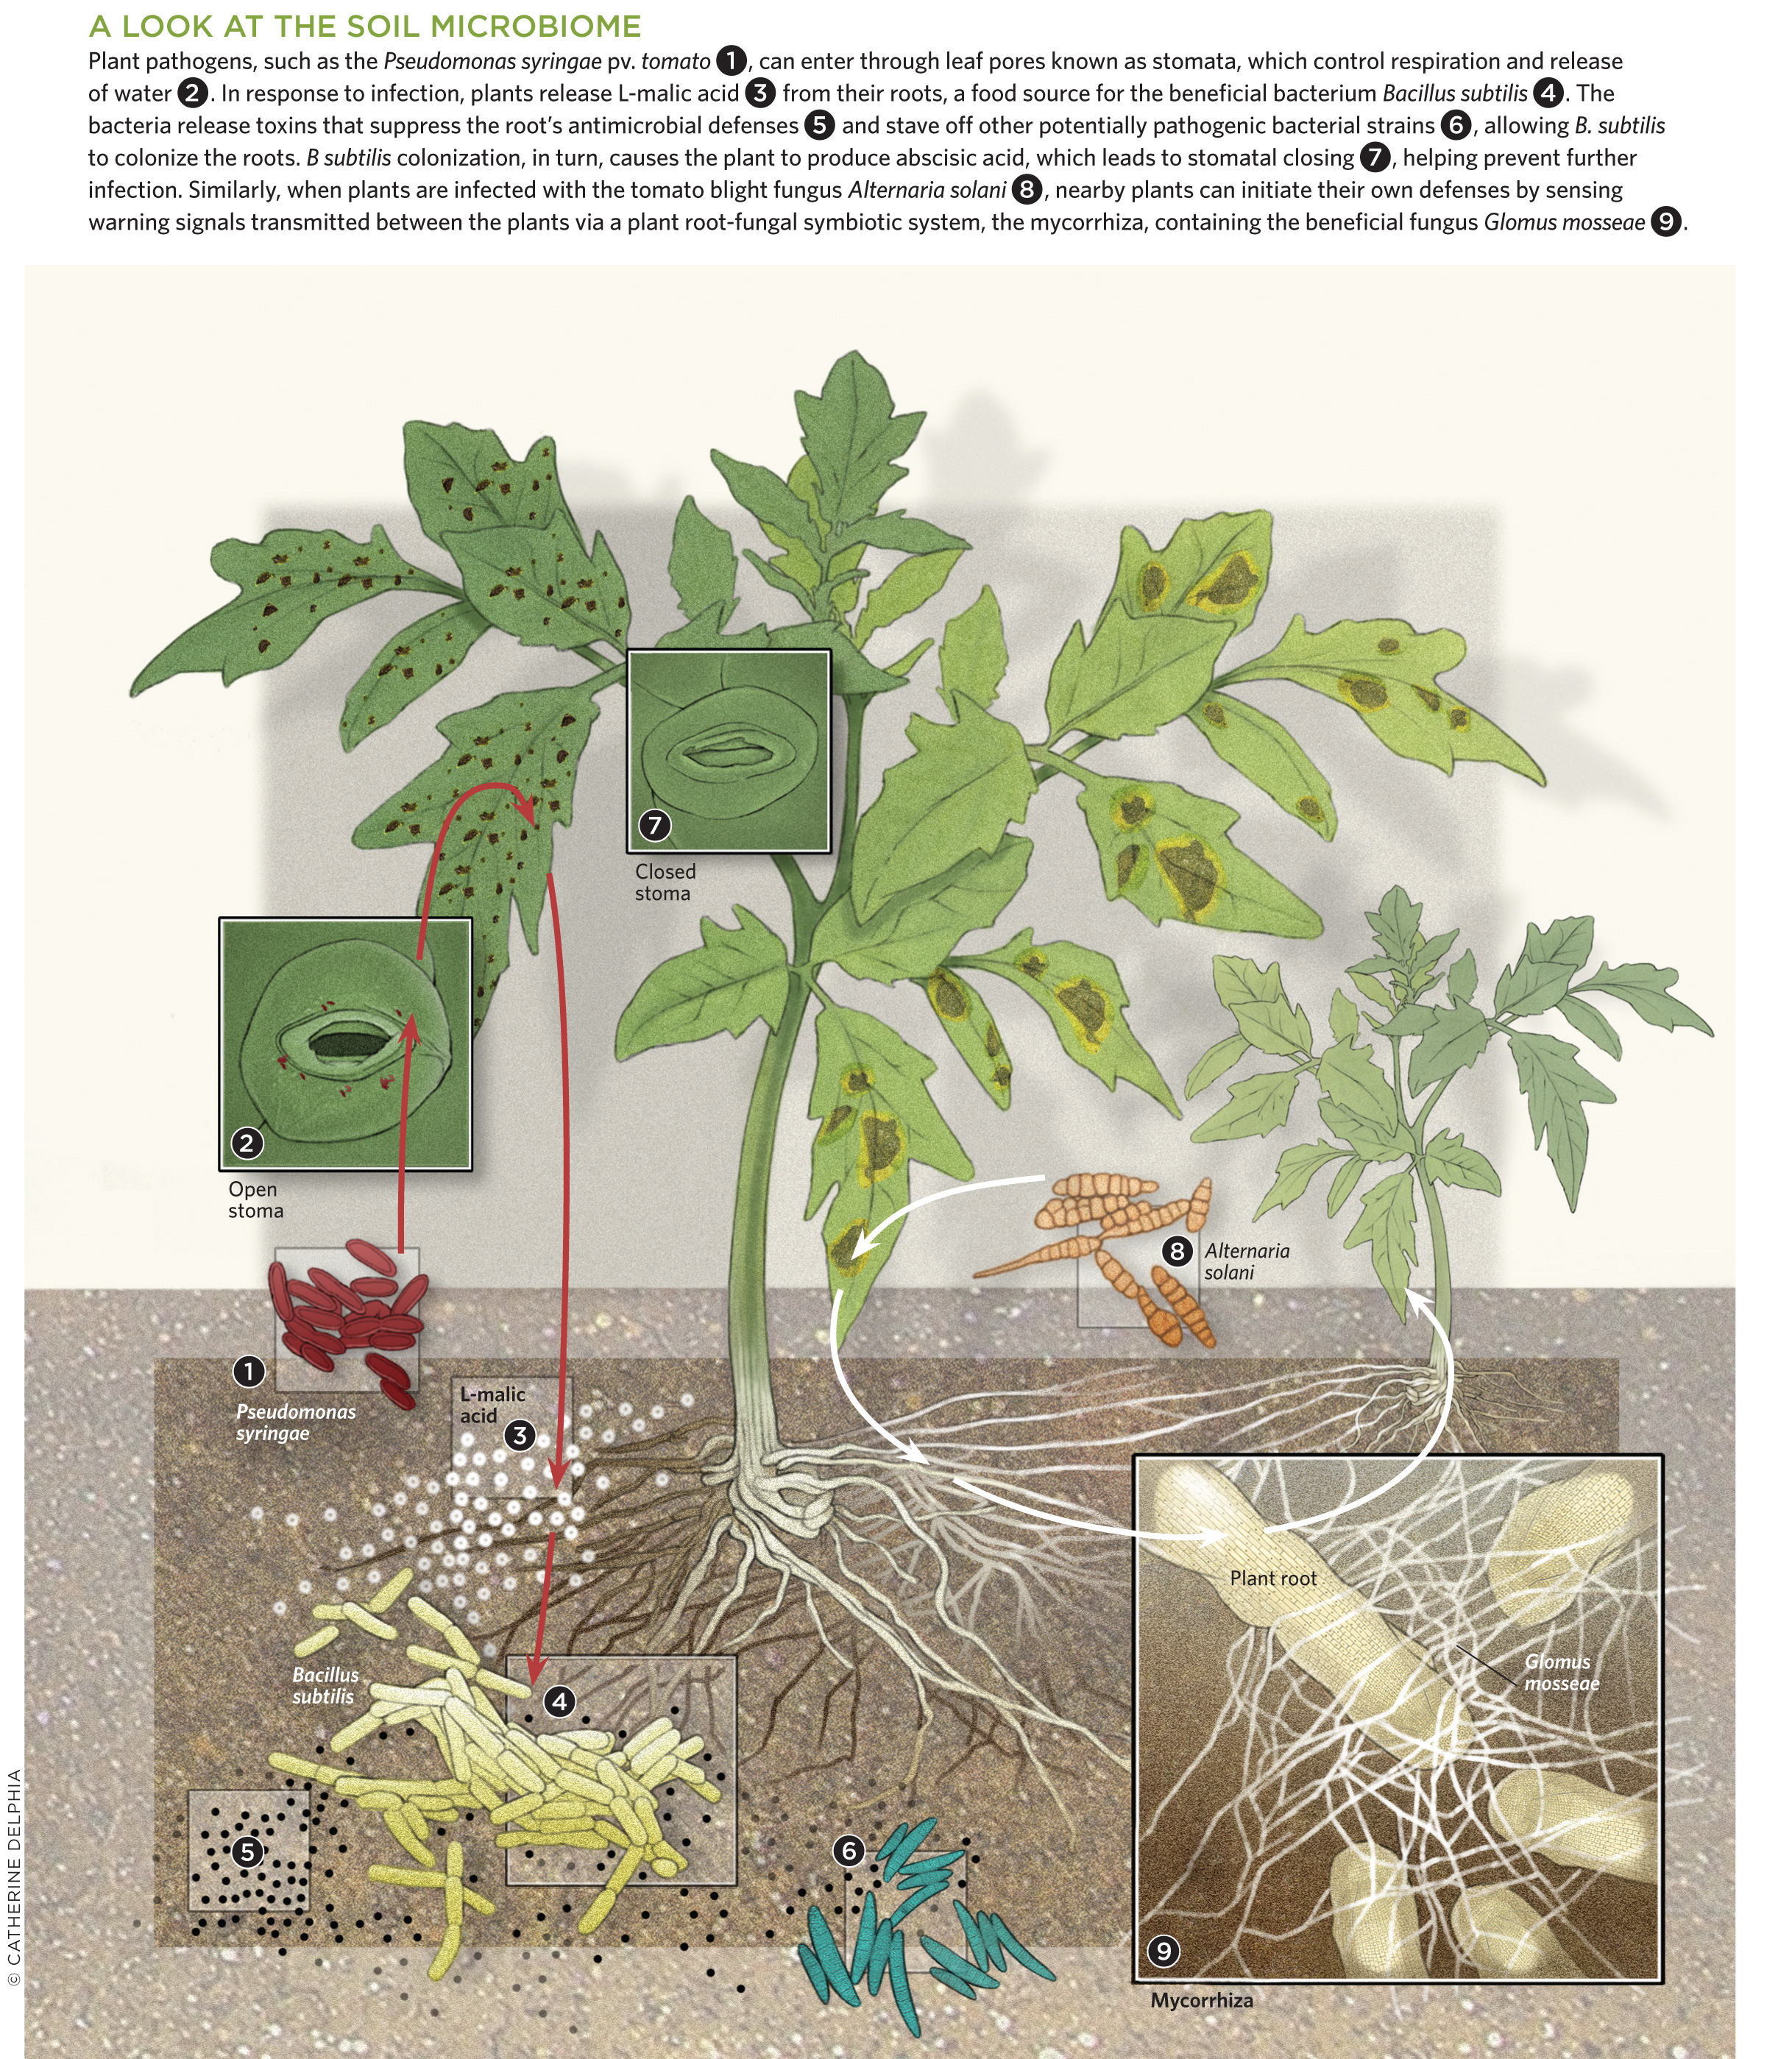 Fighting Microbes With The Scientist Magazine This Simple Plant Water Alarm Circuit Indicates When Soil Is Dry A Look At Microbiome View Full Size